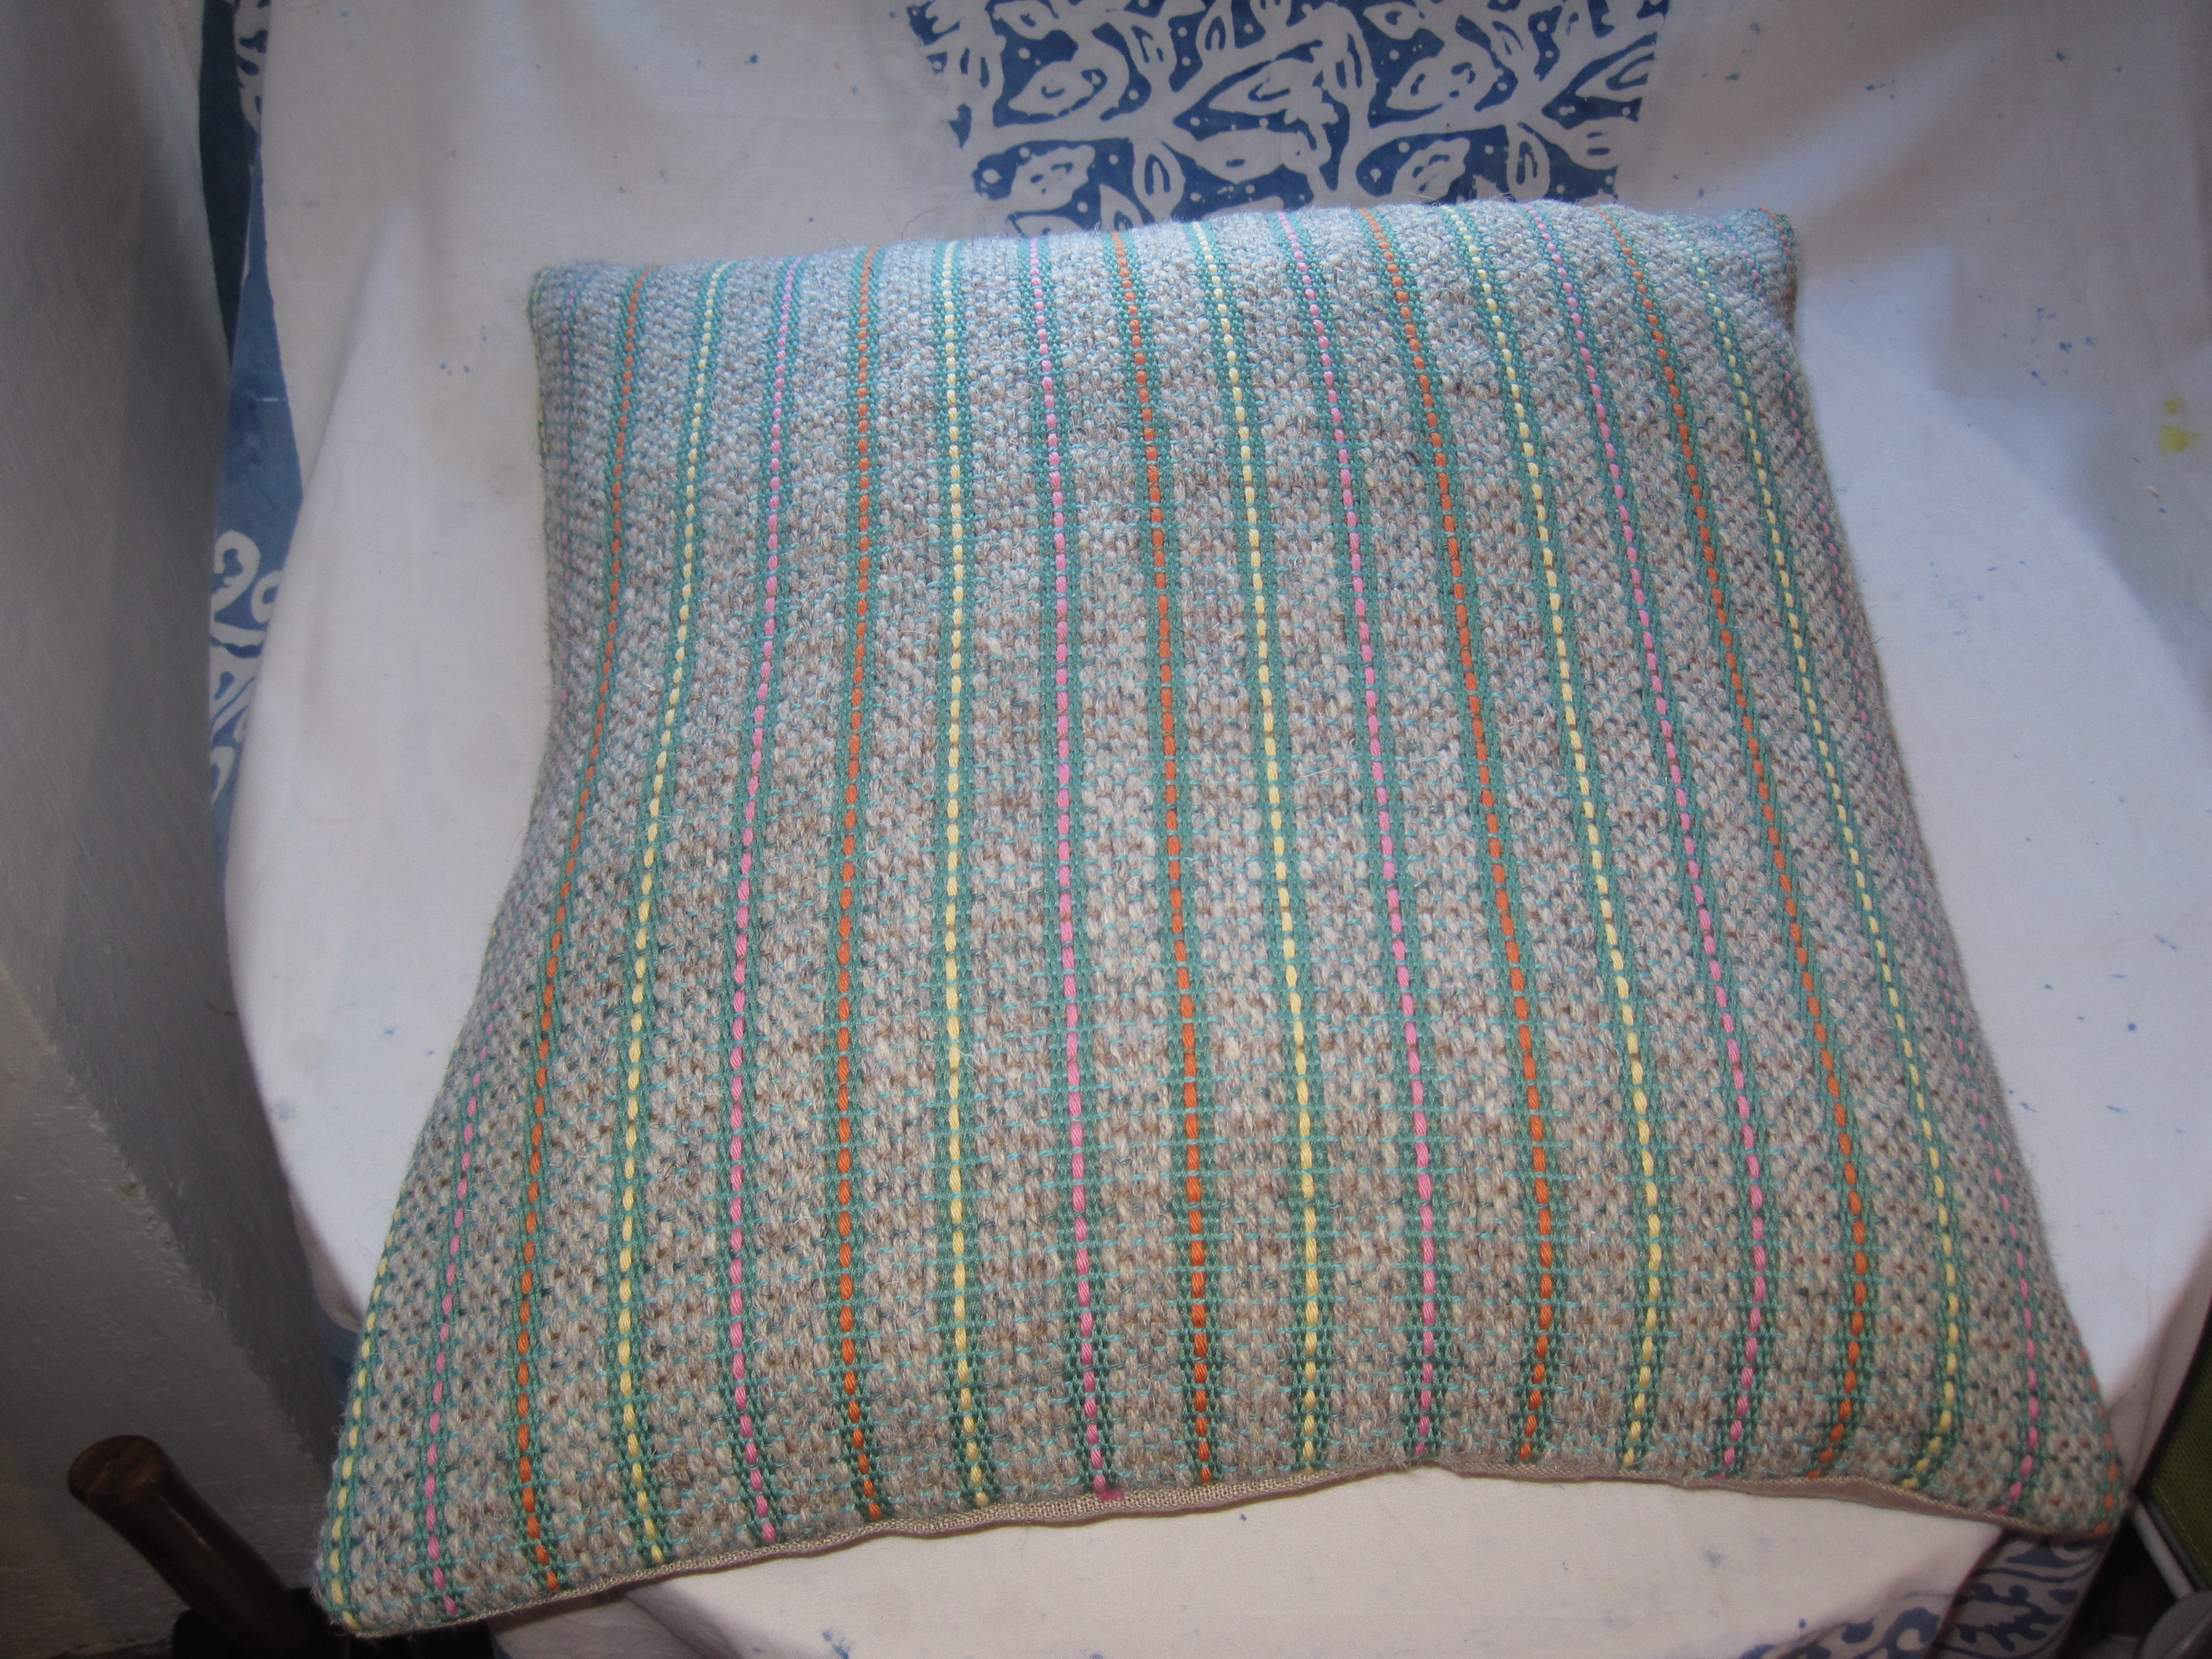 Grey berber wool and leaf green cotton with pink, orange and yellow highlights